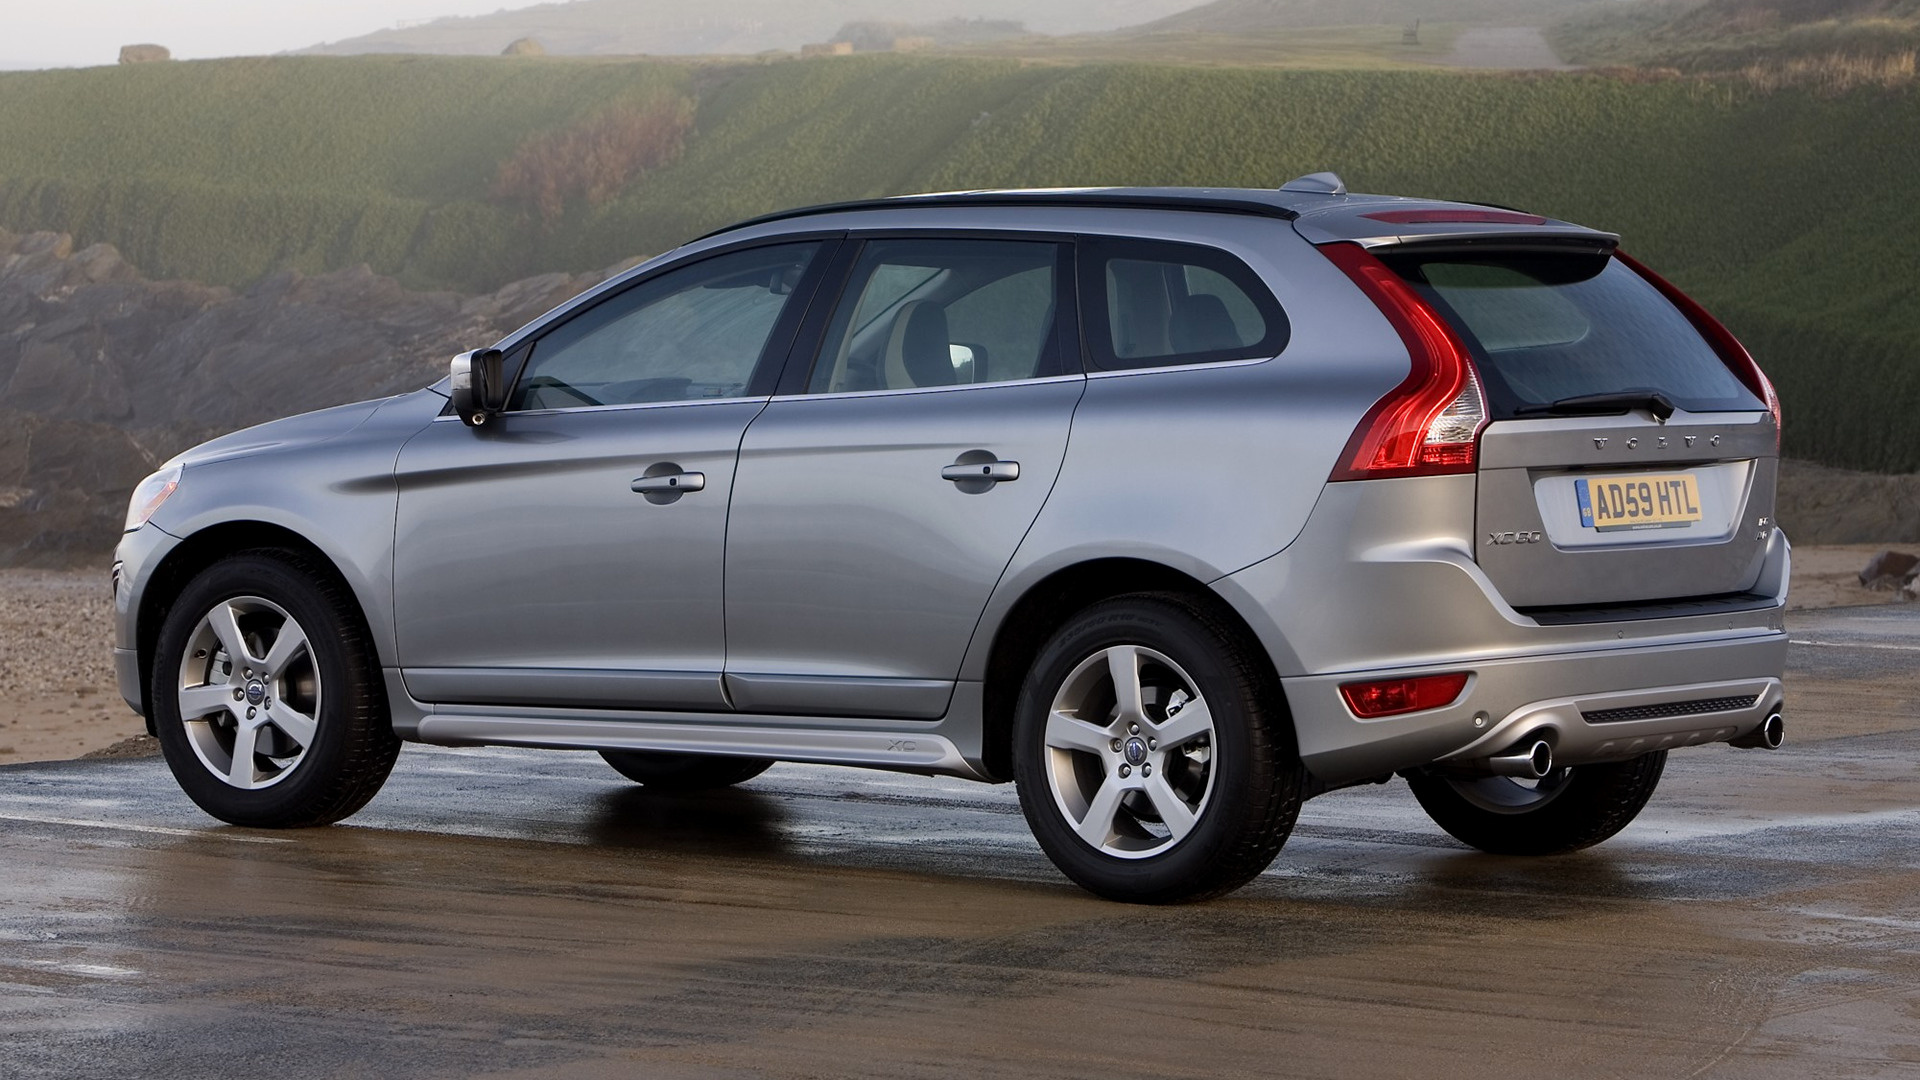 Volvo XC60 R Design 2009 UK Wallpapers and HD Images 1920x1080